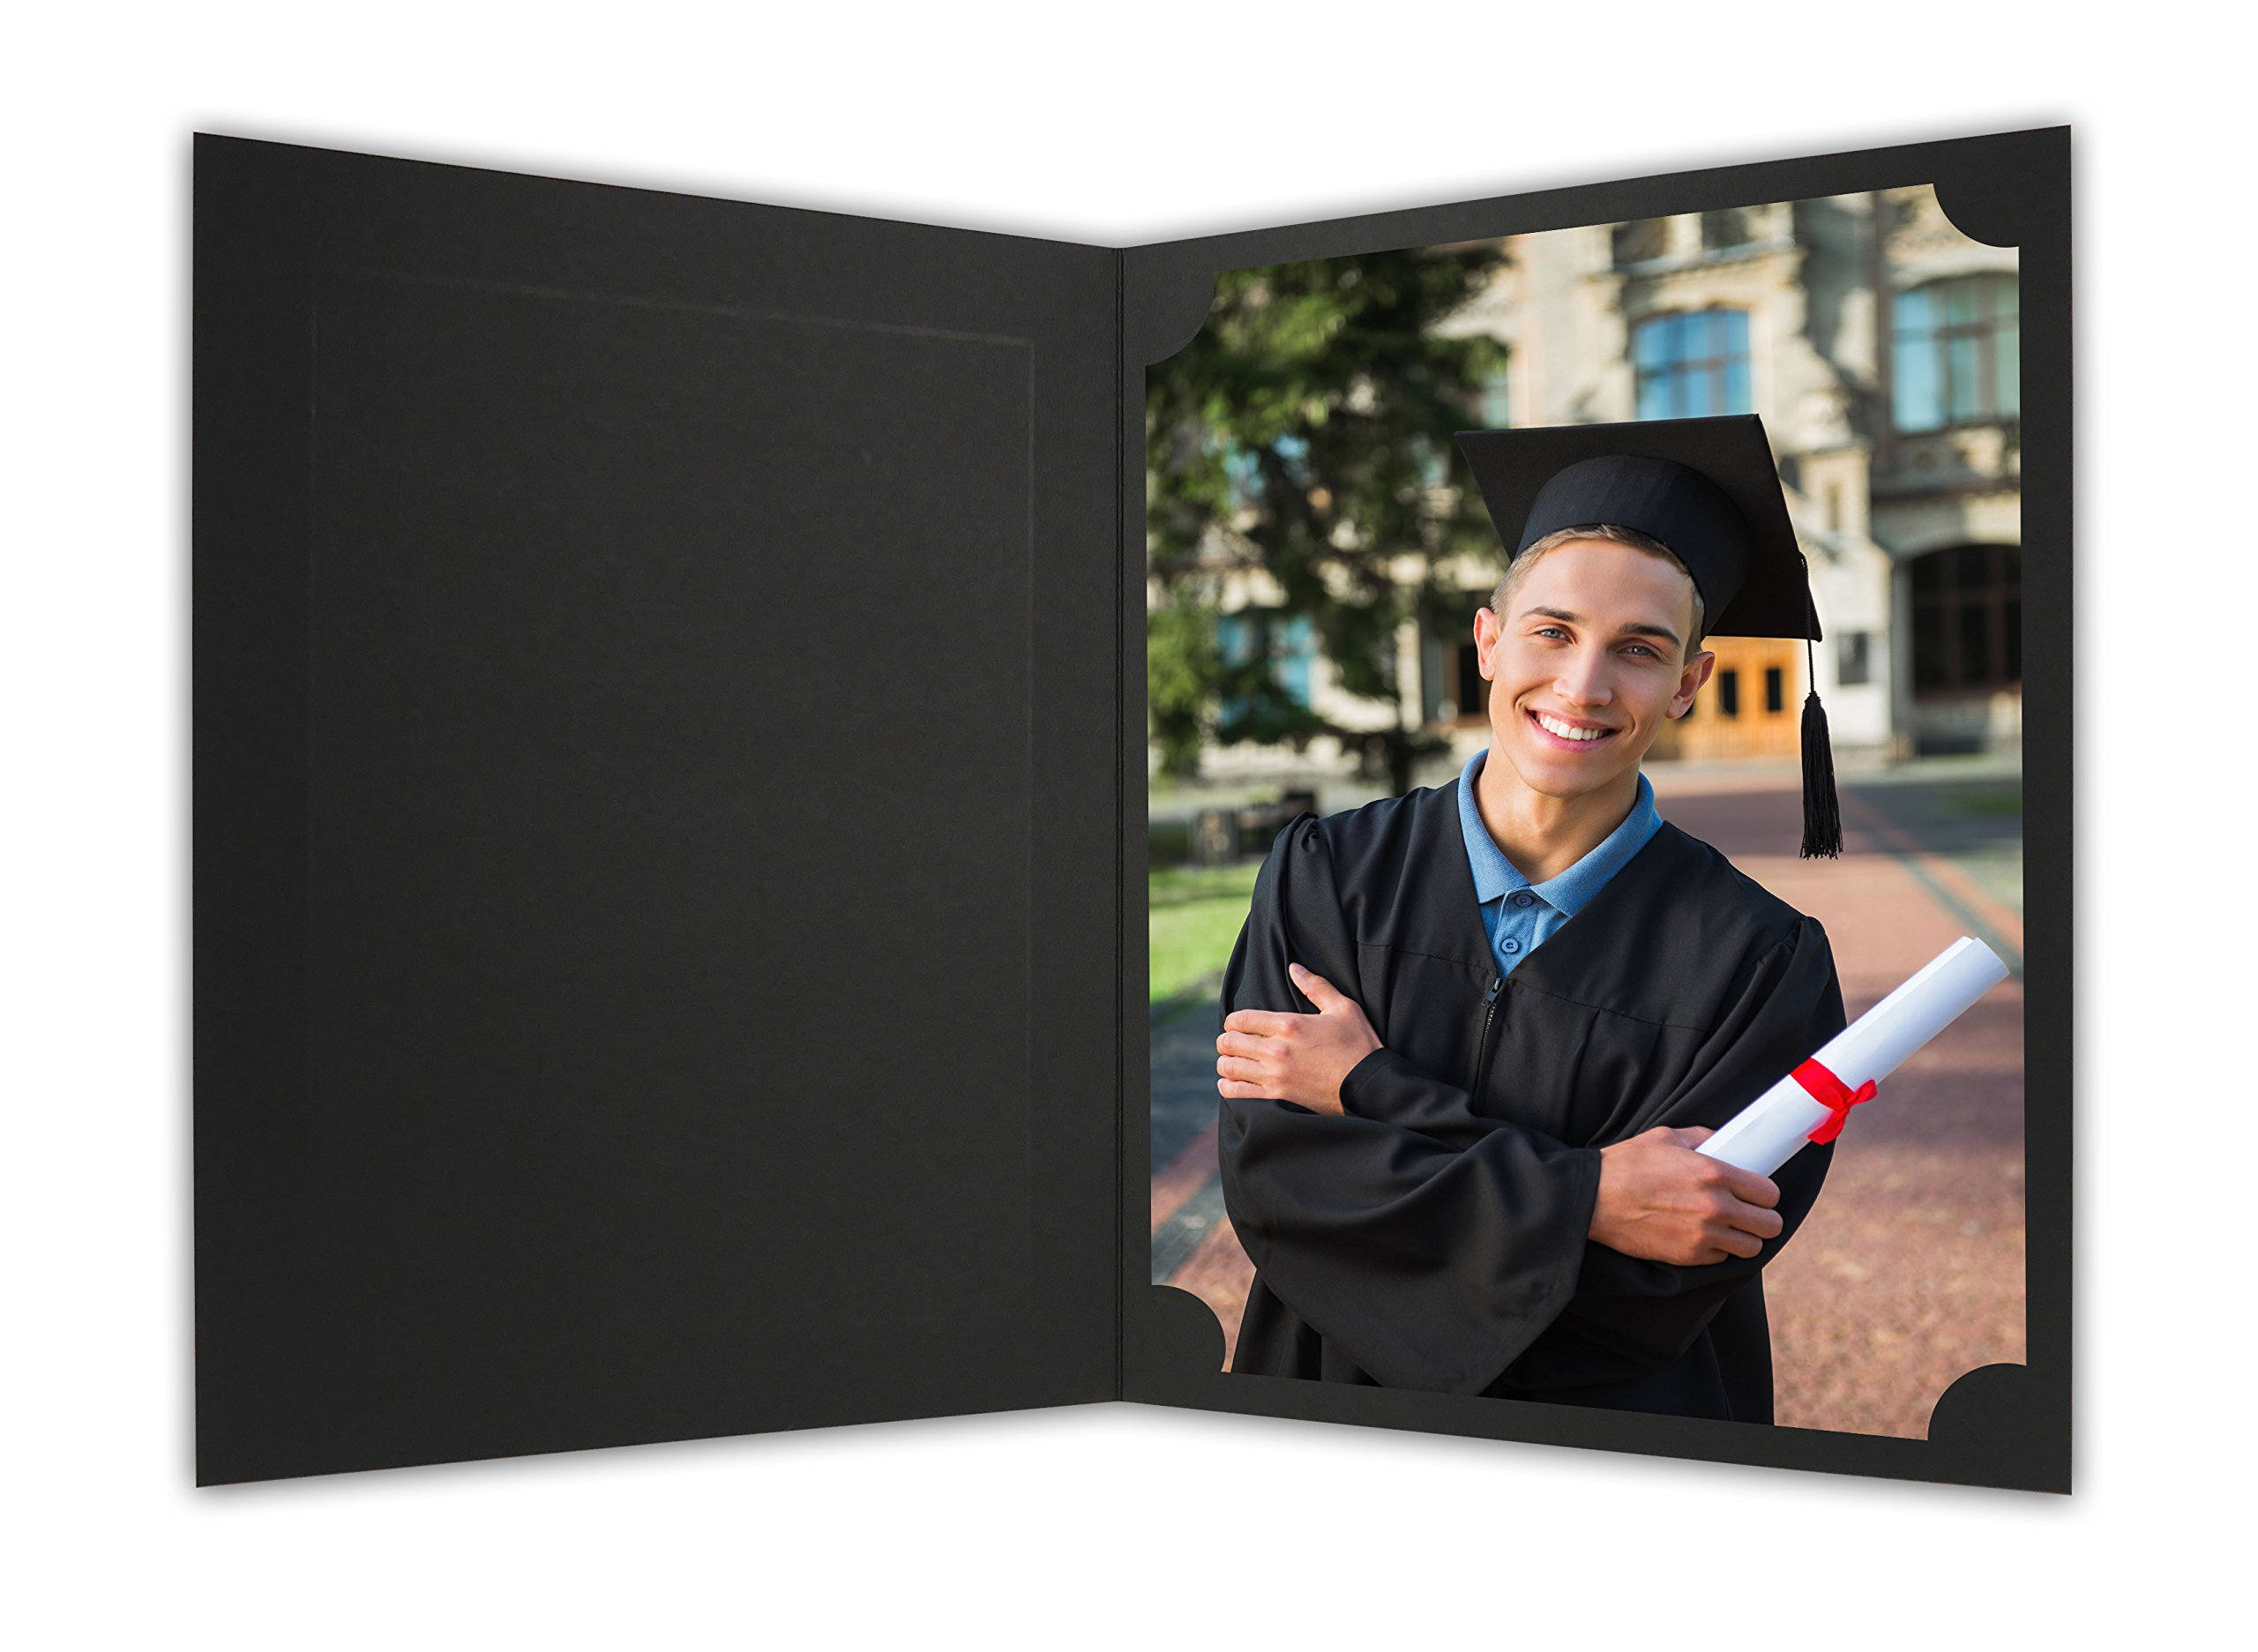 Golden State Art, Cardboard Photo Folder For a 8.5x11 Photo (Pack of 25) PF060 Black with Gold Lining by Golden State Art